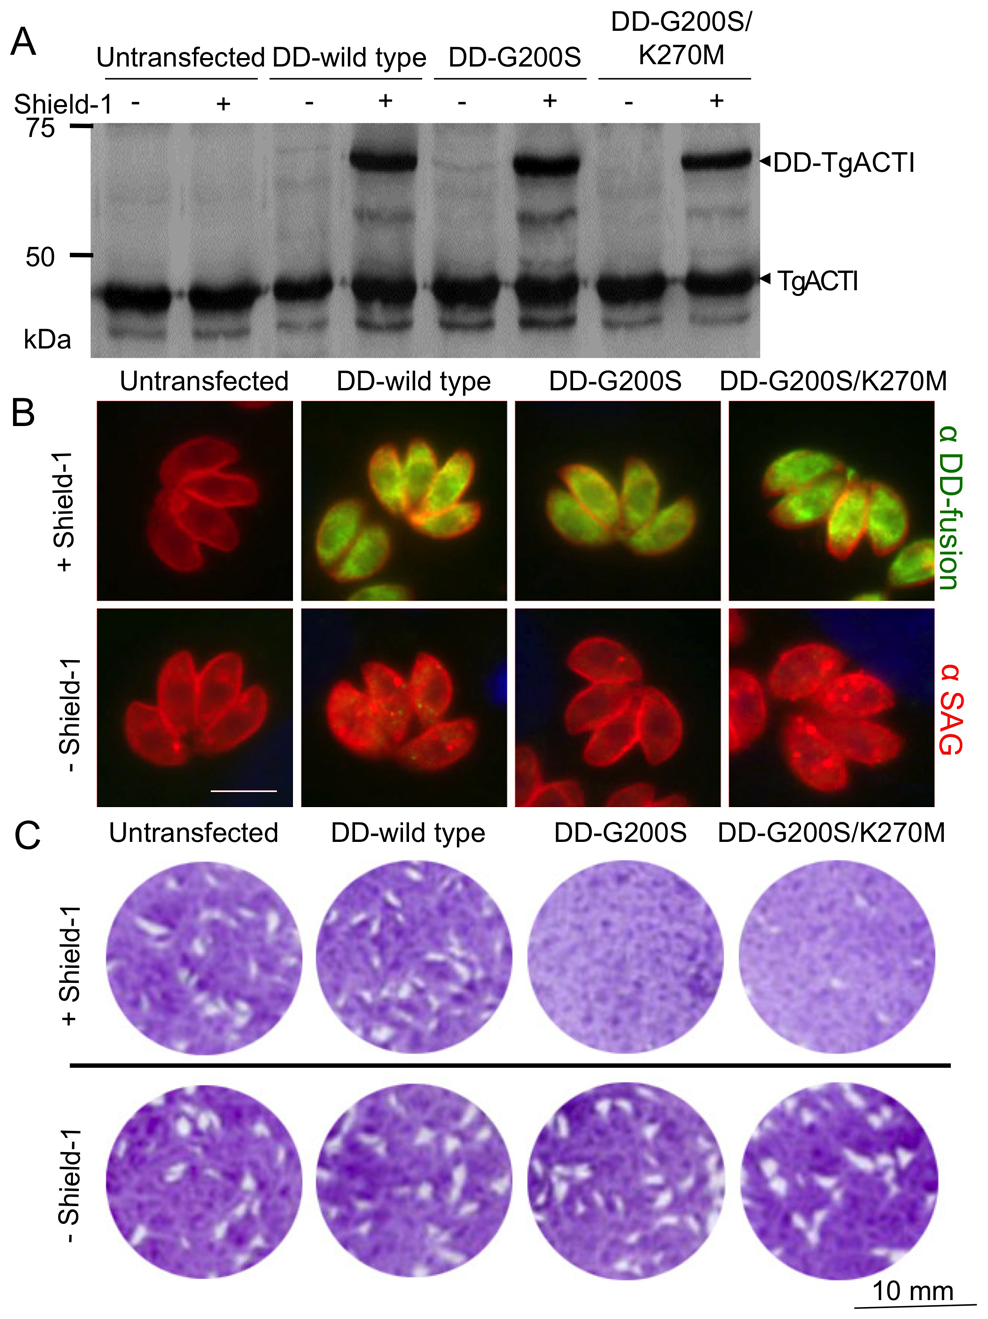 Expression of degradation domain (DD)-tagged TgACTI alleles in <i>Toxoplasma</i>.